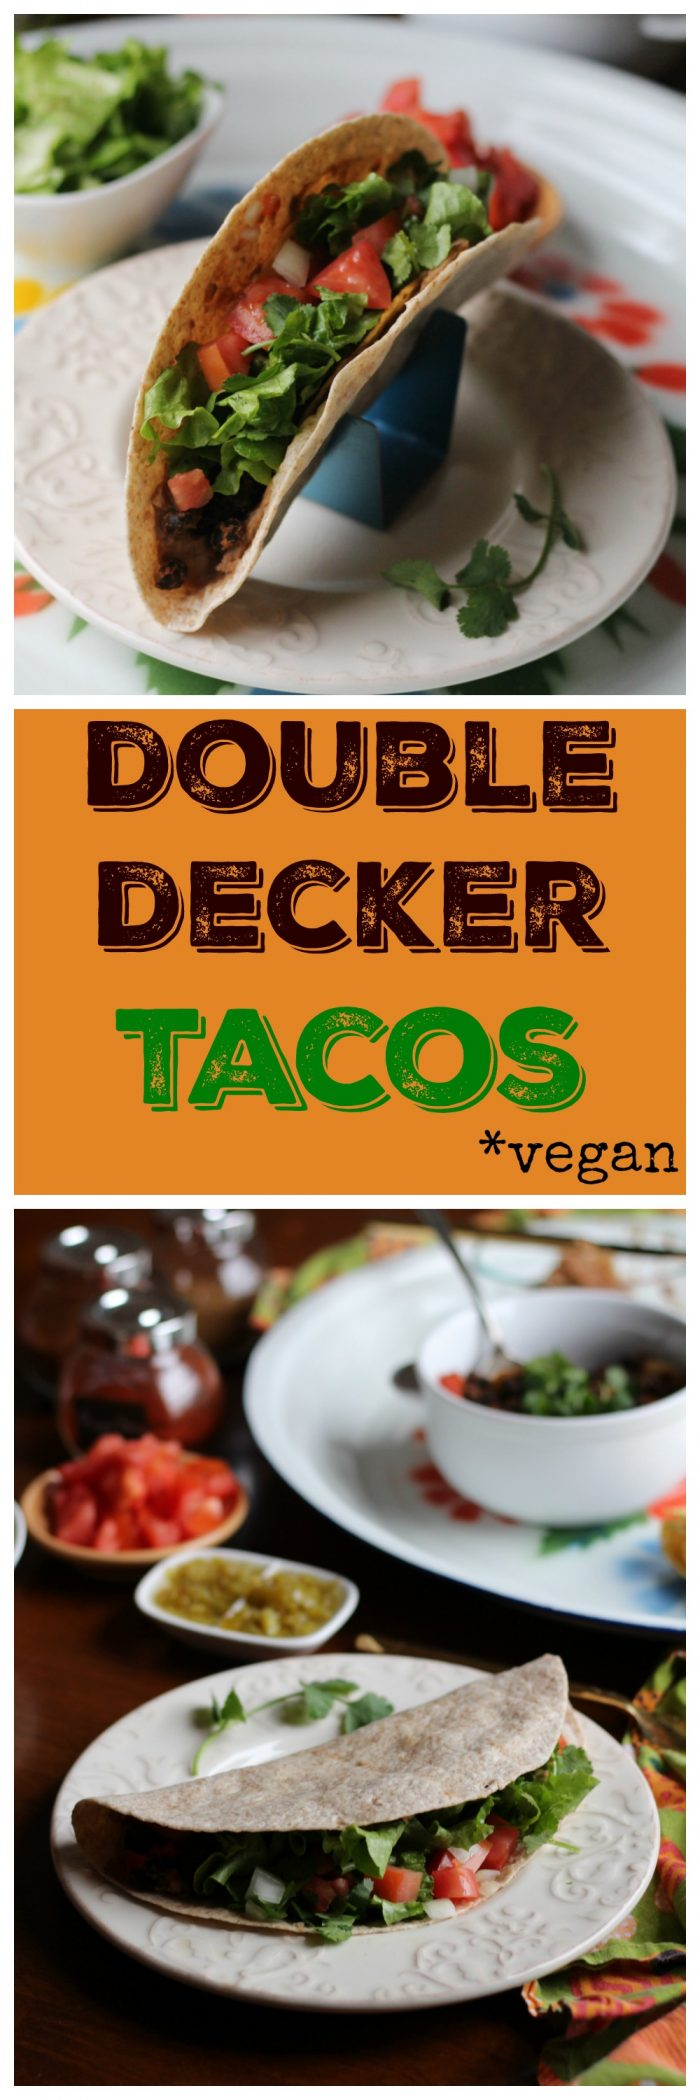 Double decker tacos are an old fast food favorite. Now you can enjoy a vegan version at home with two layers of beans, hard and soft shells, and veggies. #tacos #vegan #copycat